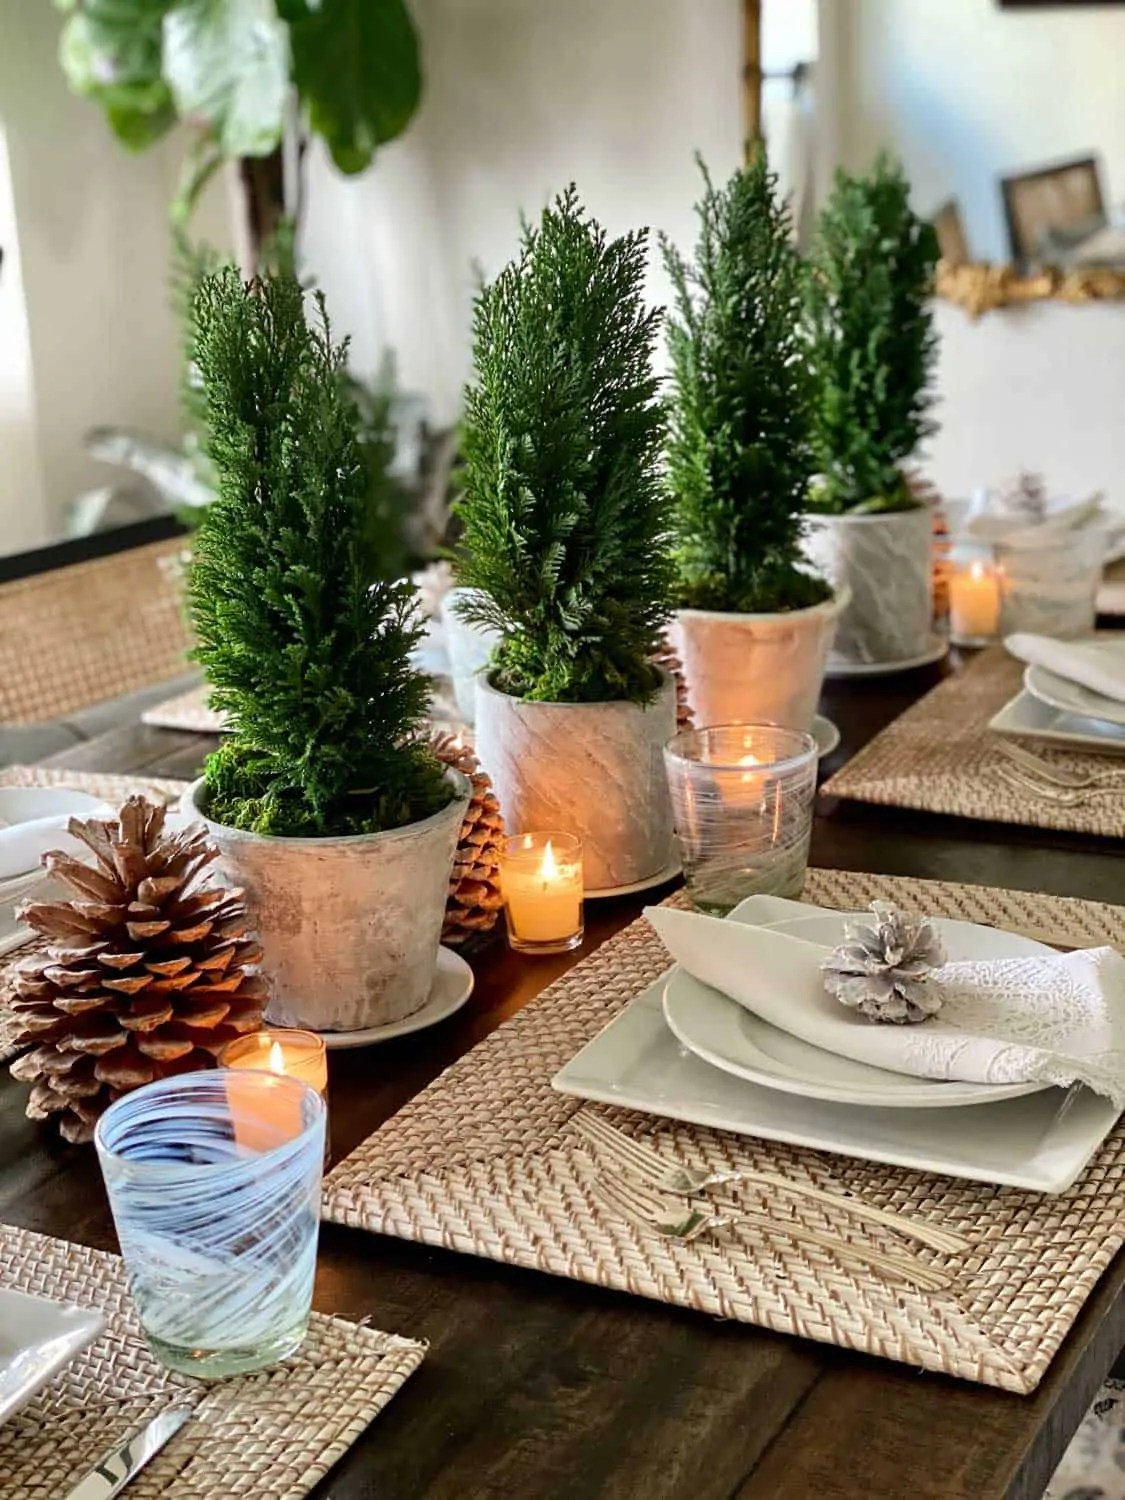 Lifestyle Blogger Mary Ann Pickett's Winter Table with Mini Cypress Trees and Pinecones